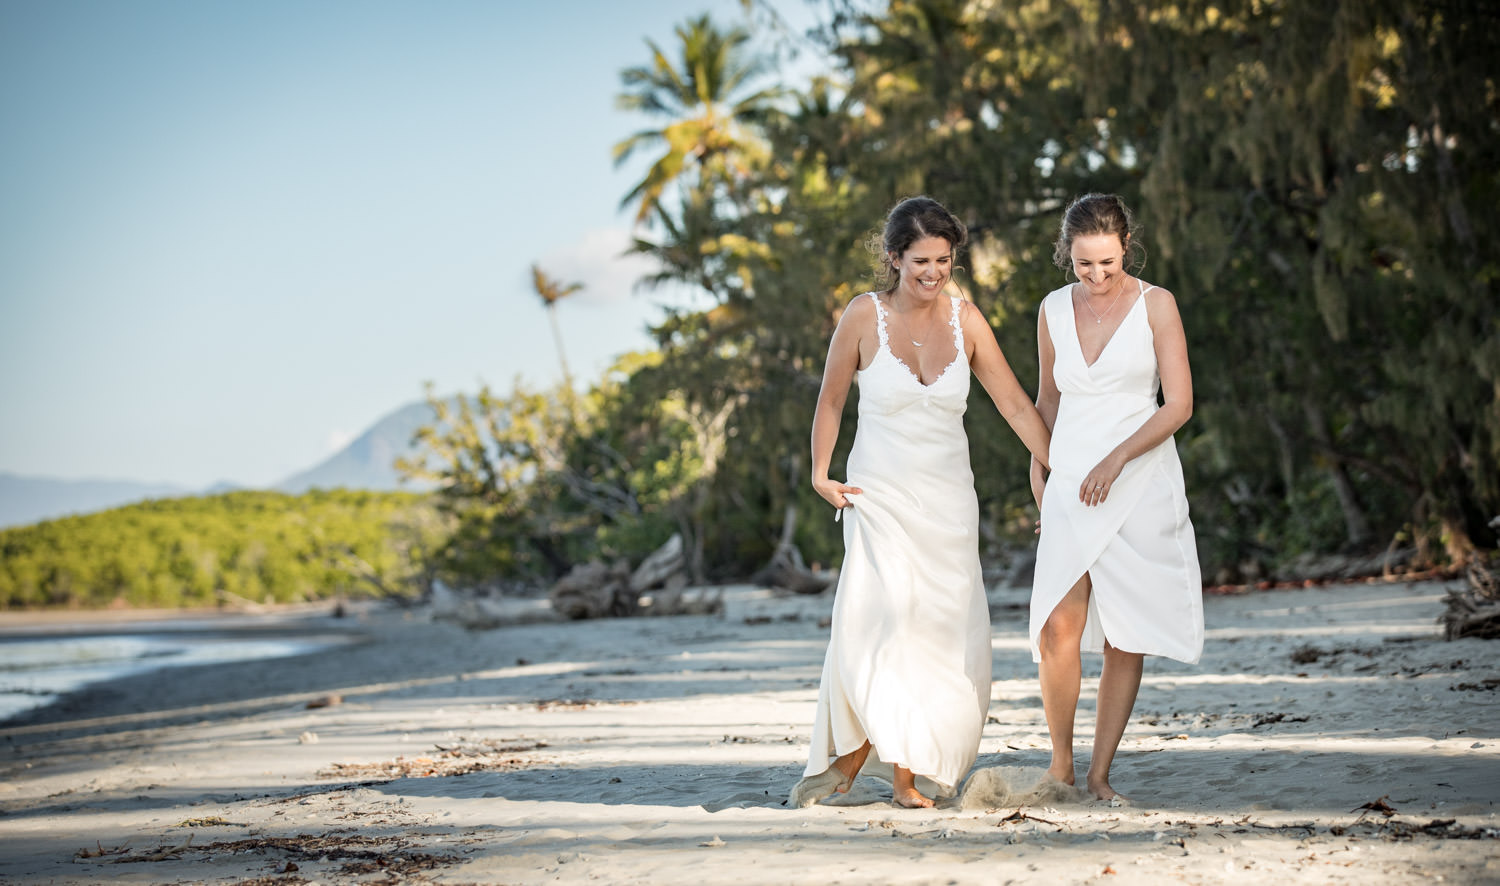 68 Port Douglas Wedding Photographer Catseye Productions 044A9271